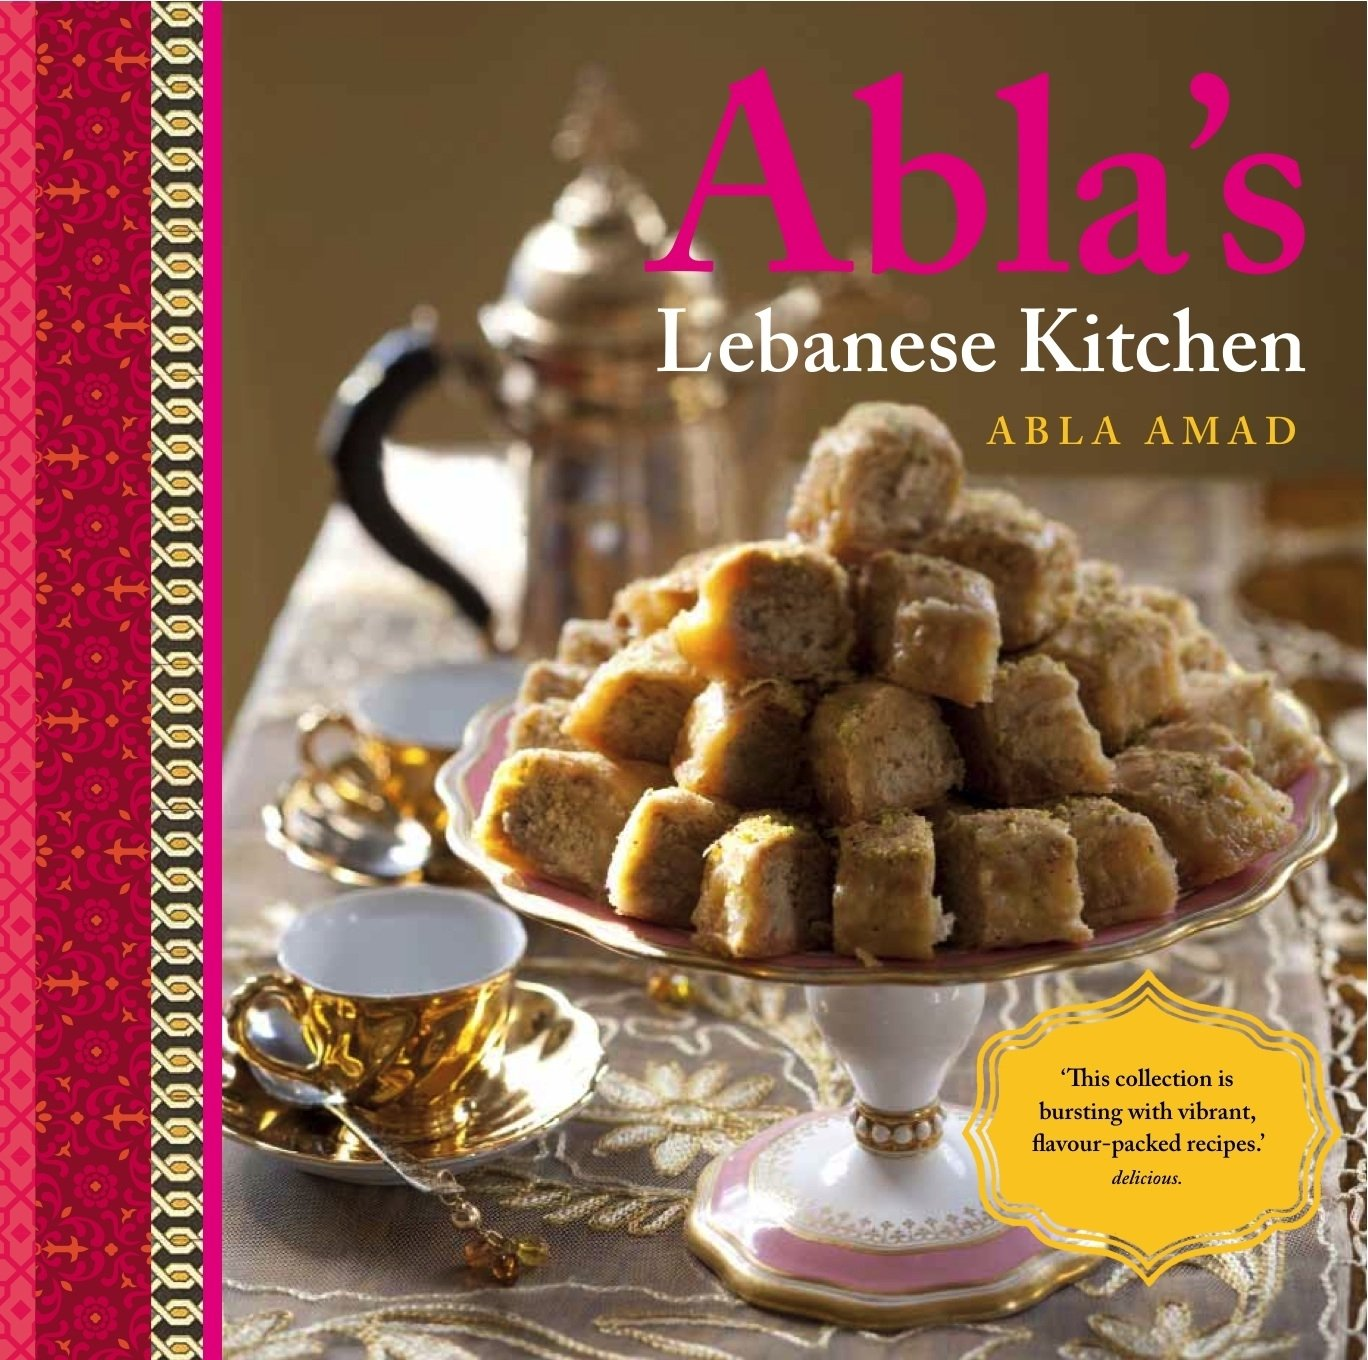 ablas lebanese kitchen abla amad 9781921383342 amazoncom books - Lebanese Kitchen